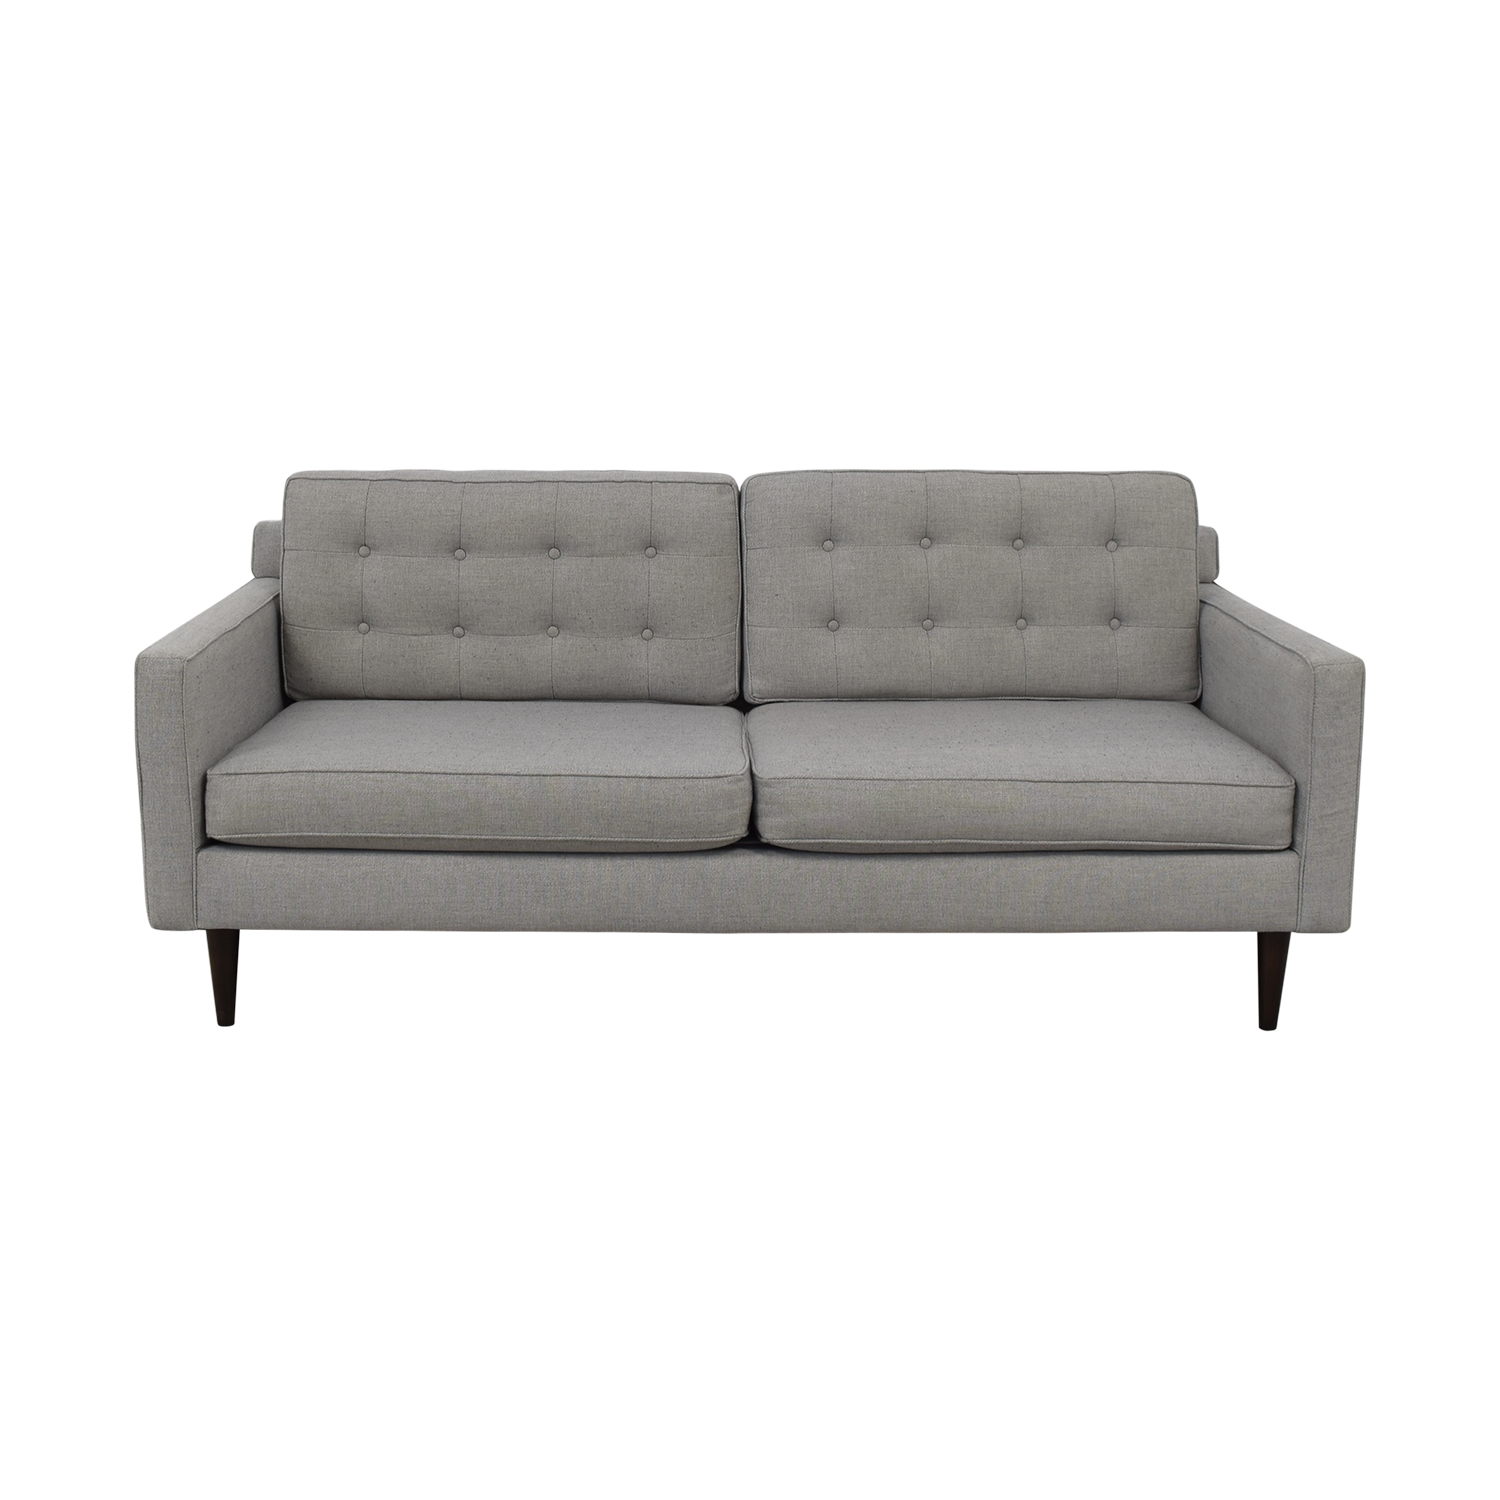 West Elm West Elm Drake Sofa on sale